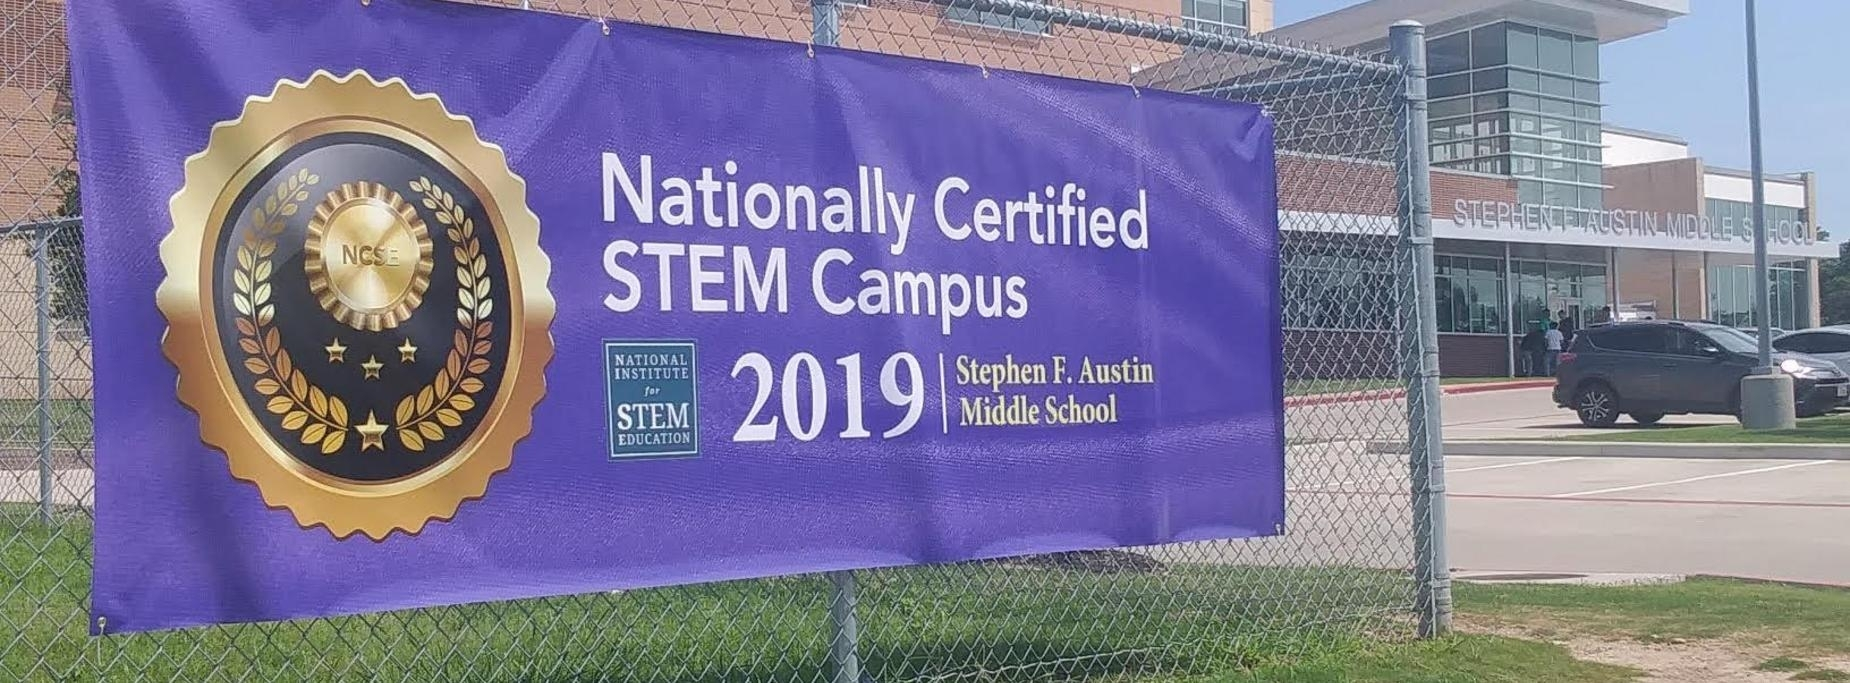 Sfa Middle School with regard to Jan 2020 Calendar For Stephen F Austin